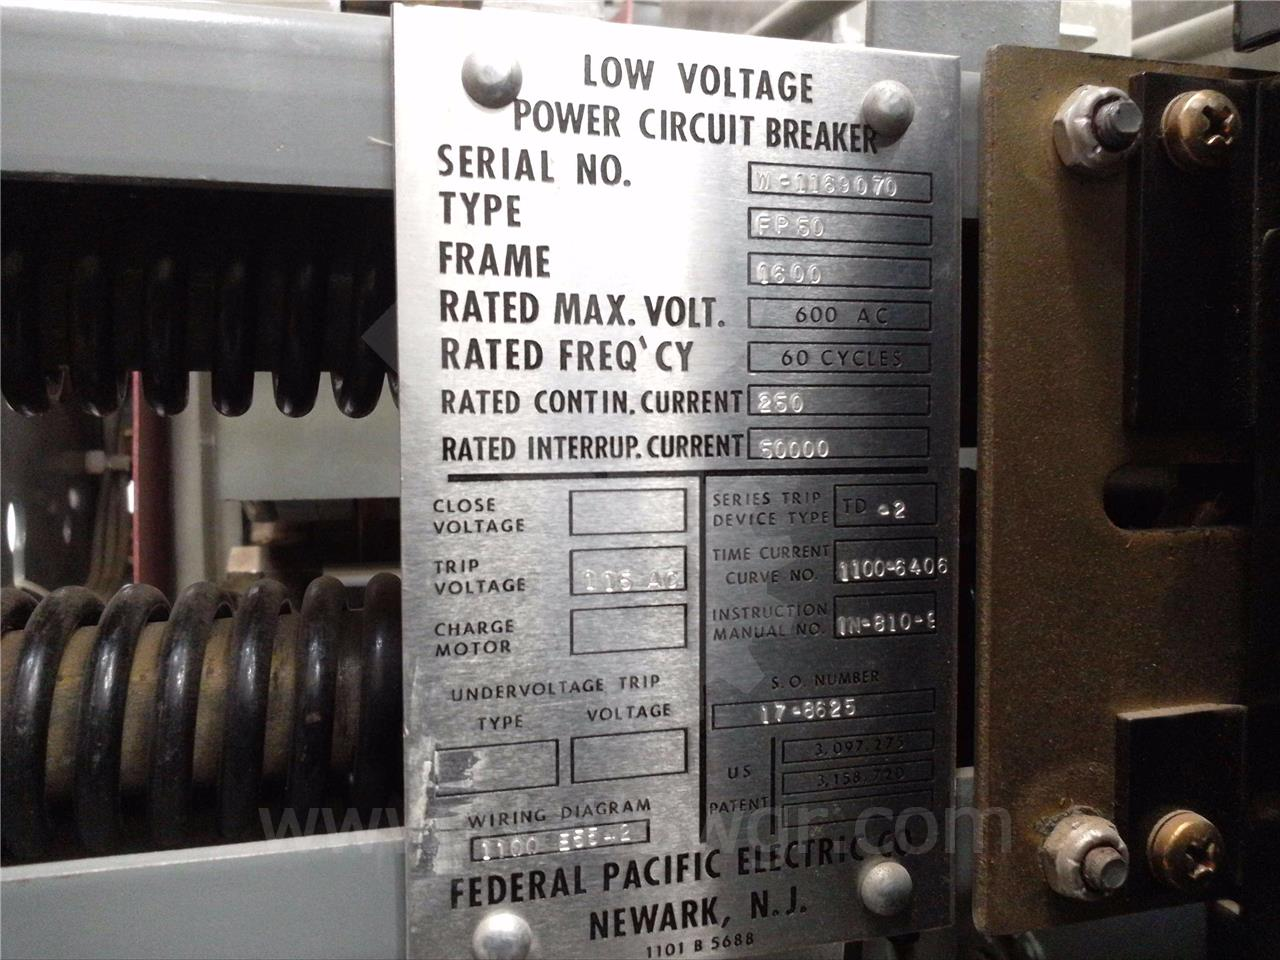 Fp 50 1600a Federal Pacific Pioneer Mo Do 120vac Shunt Solid State Relay Newark Trip 250a Td 2 Lsi